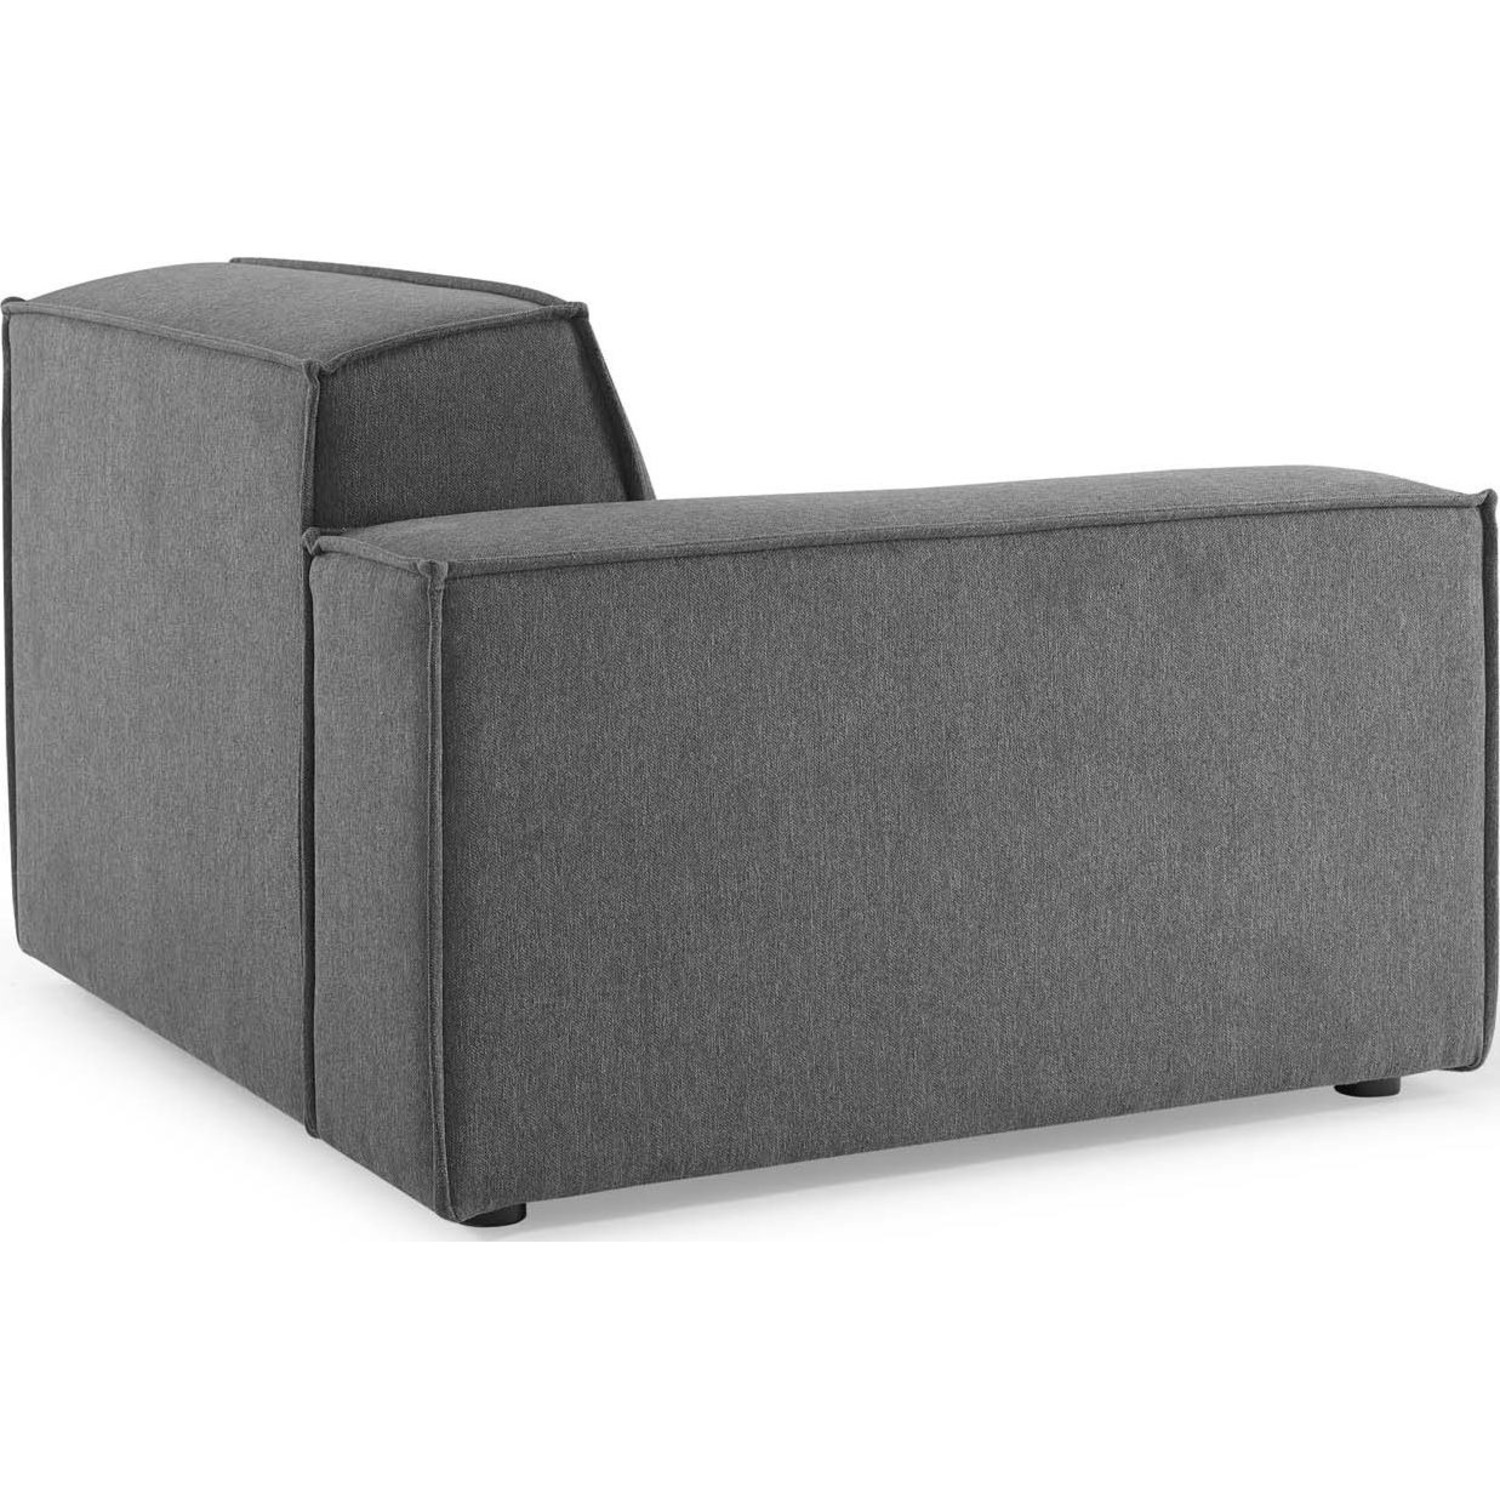 4-Piece Sectional Sofa In Charcoal Foam Padding - image-7